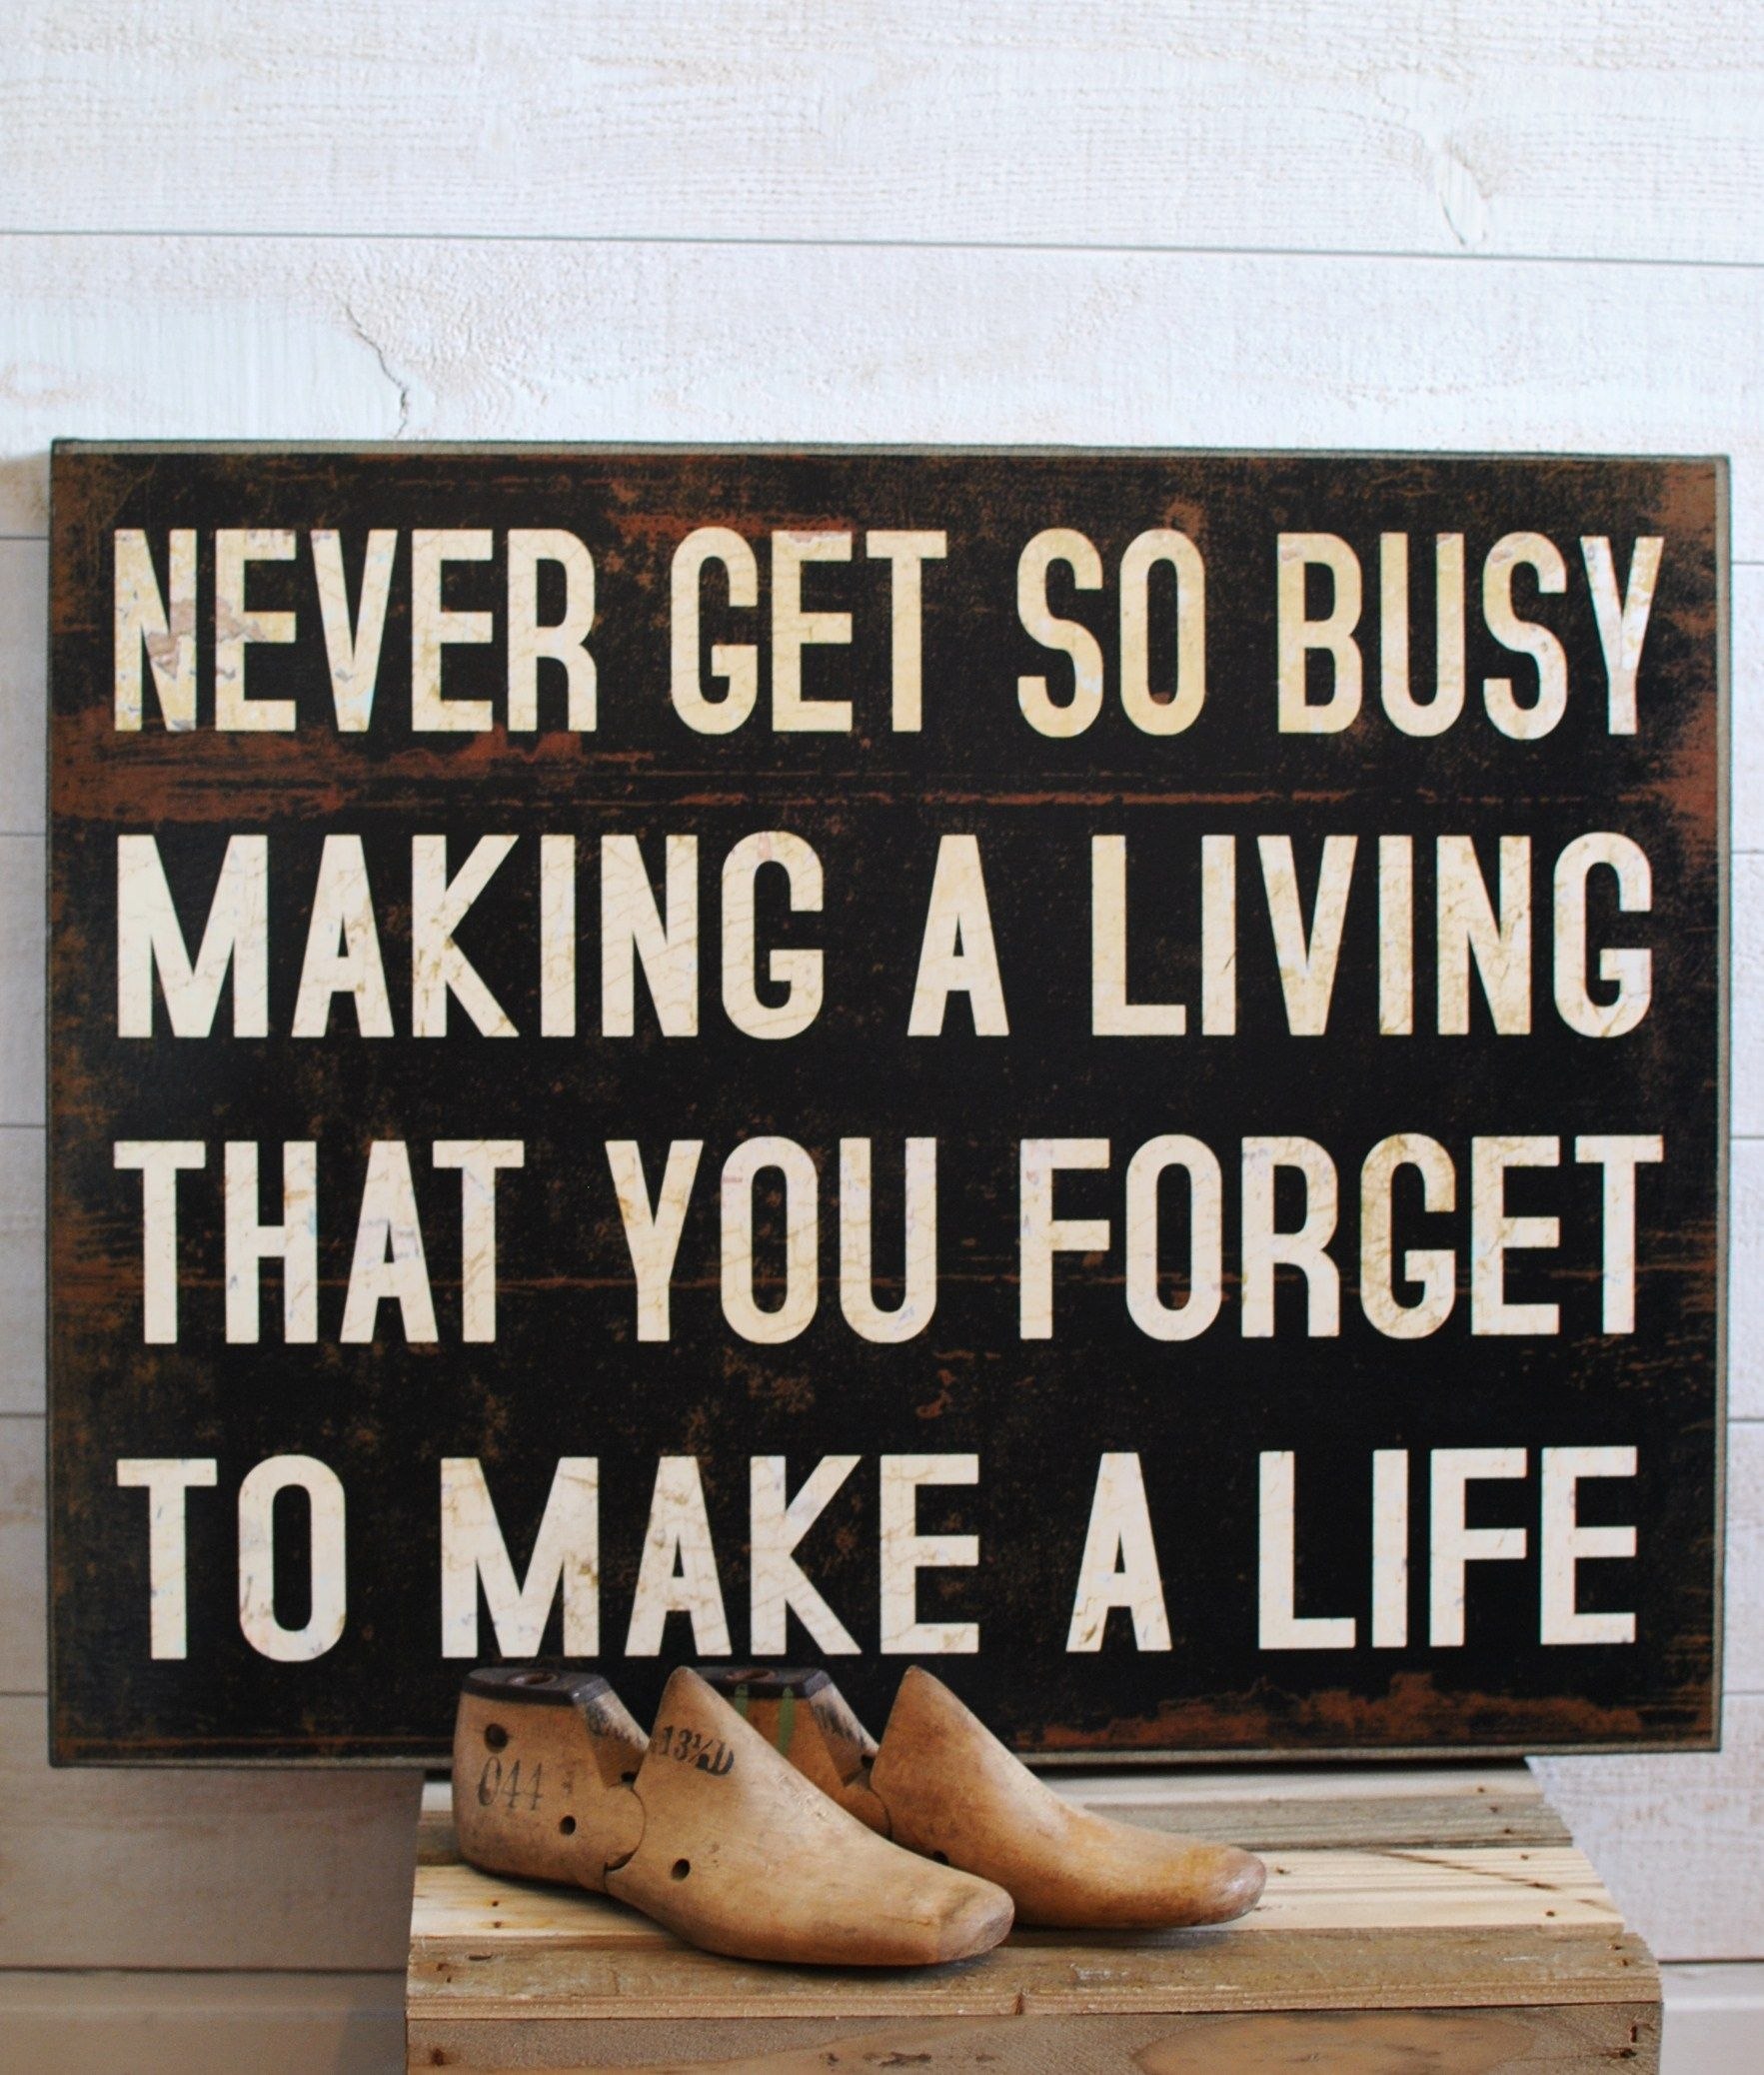 Get A Life: Never Get So Busy Making A Living That You Forget To Make